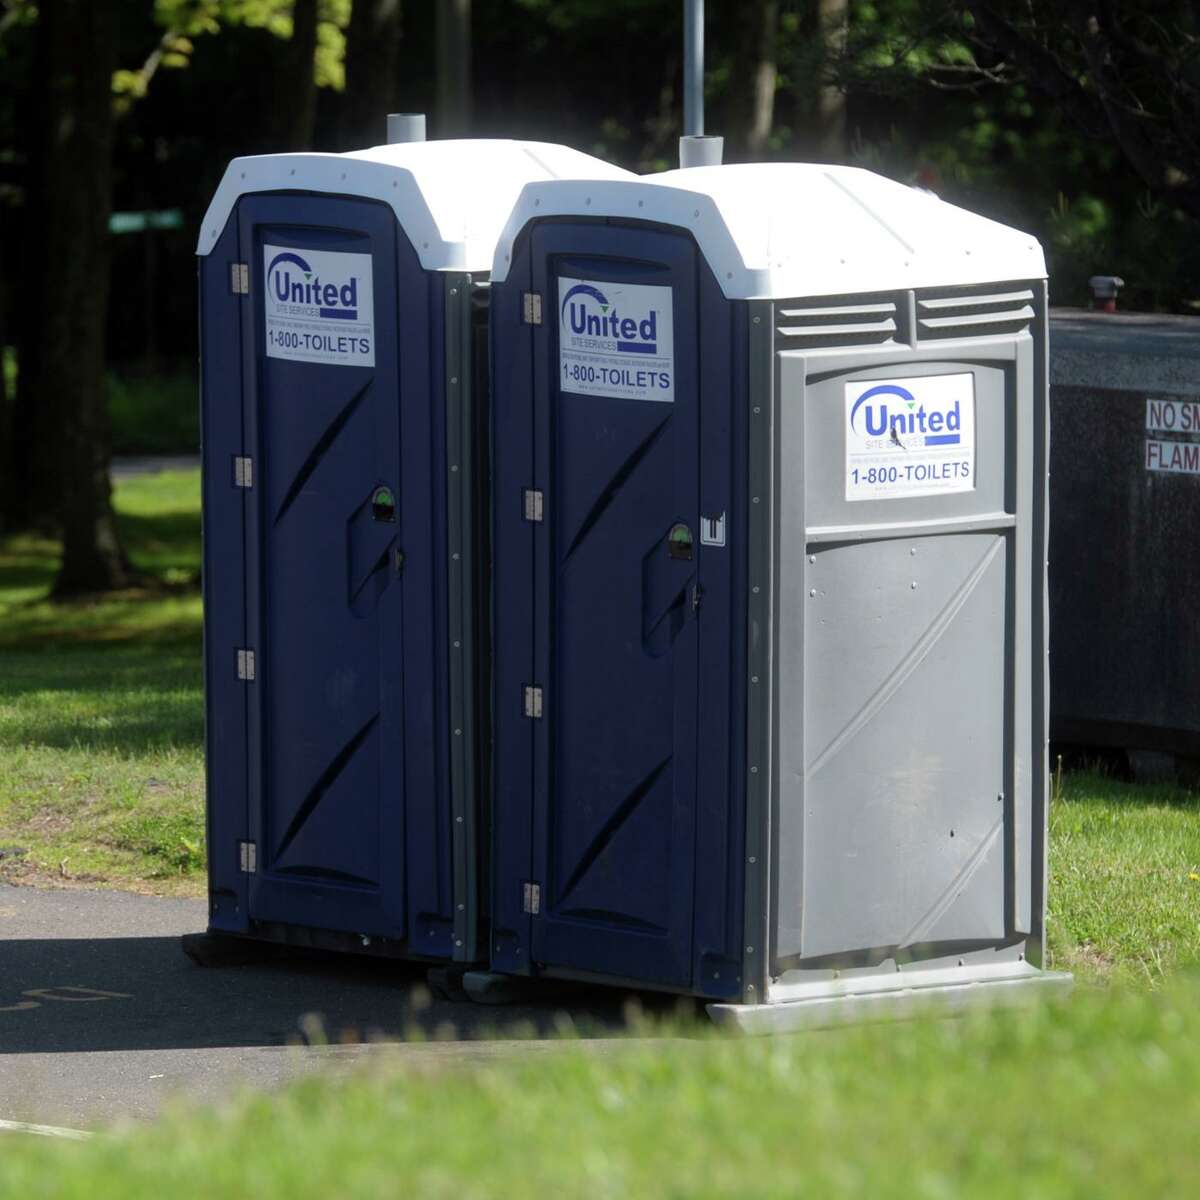 The portable toilets stationed at Shelton police headquarters have become the center of a complaint filed by the police union against the city.